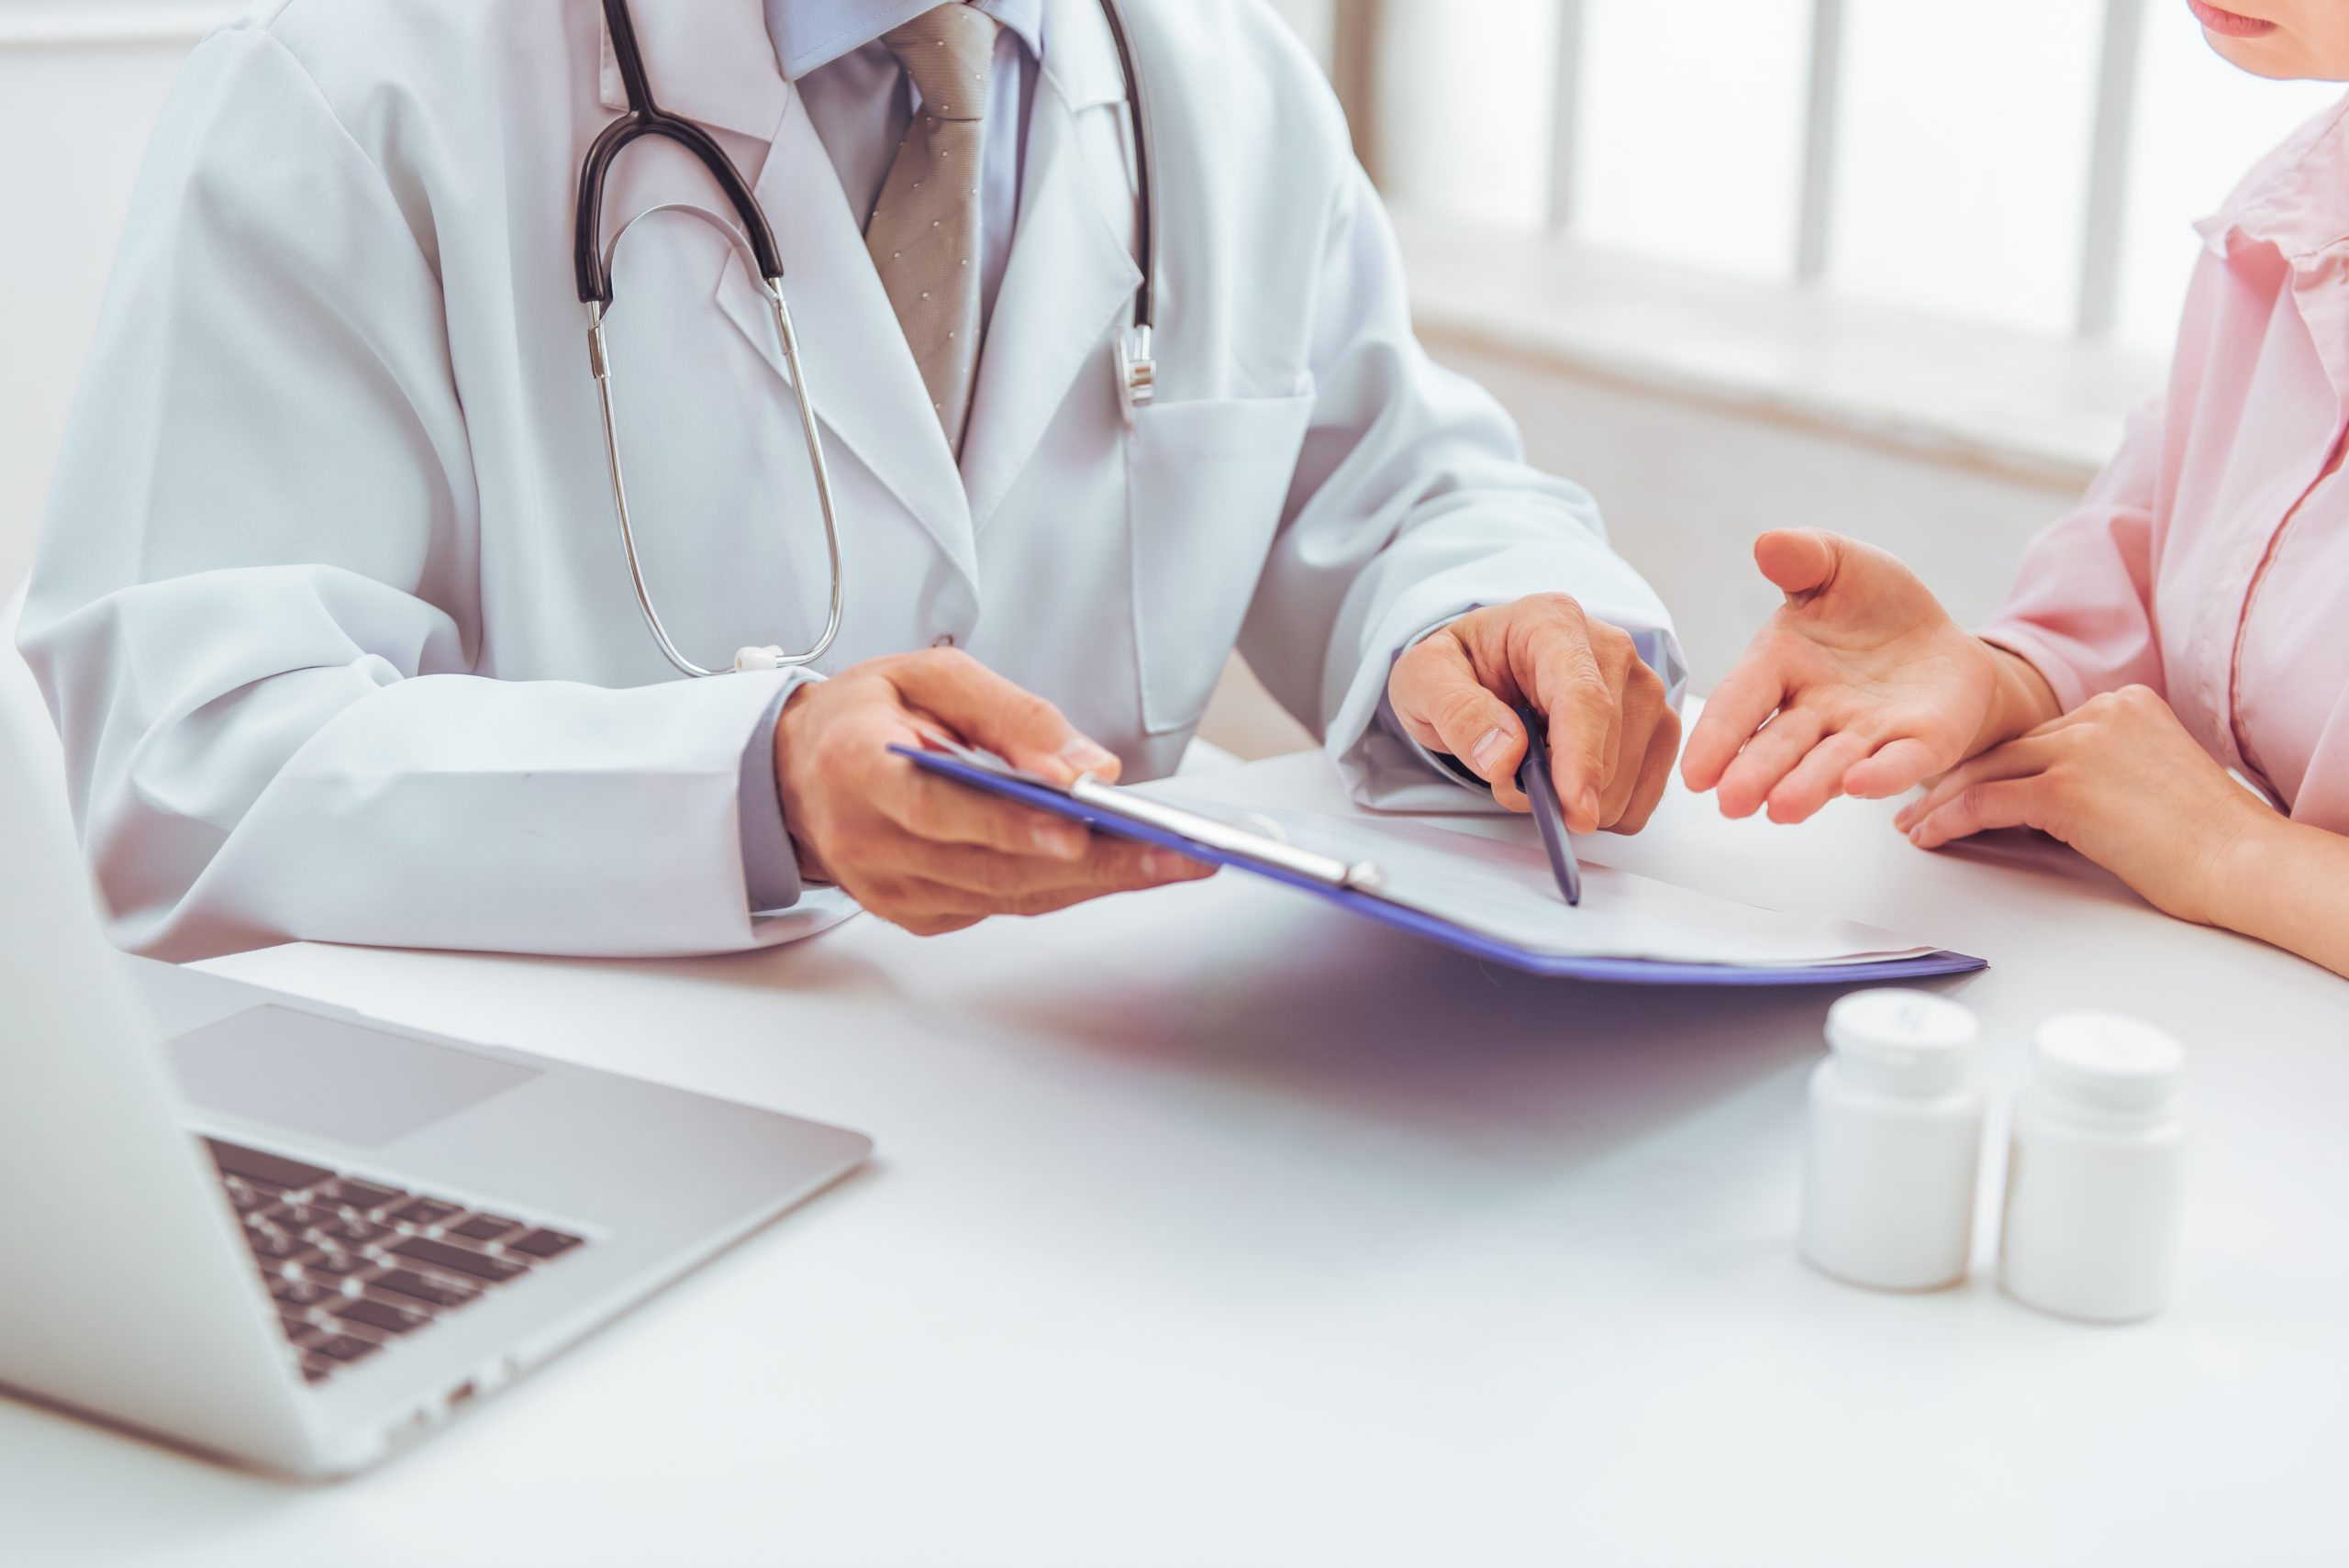 Patients have the right to sue the hospital if trainees attended examination without prior consent